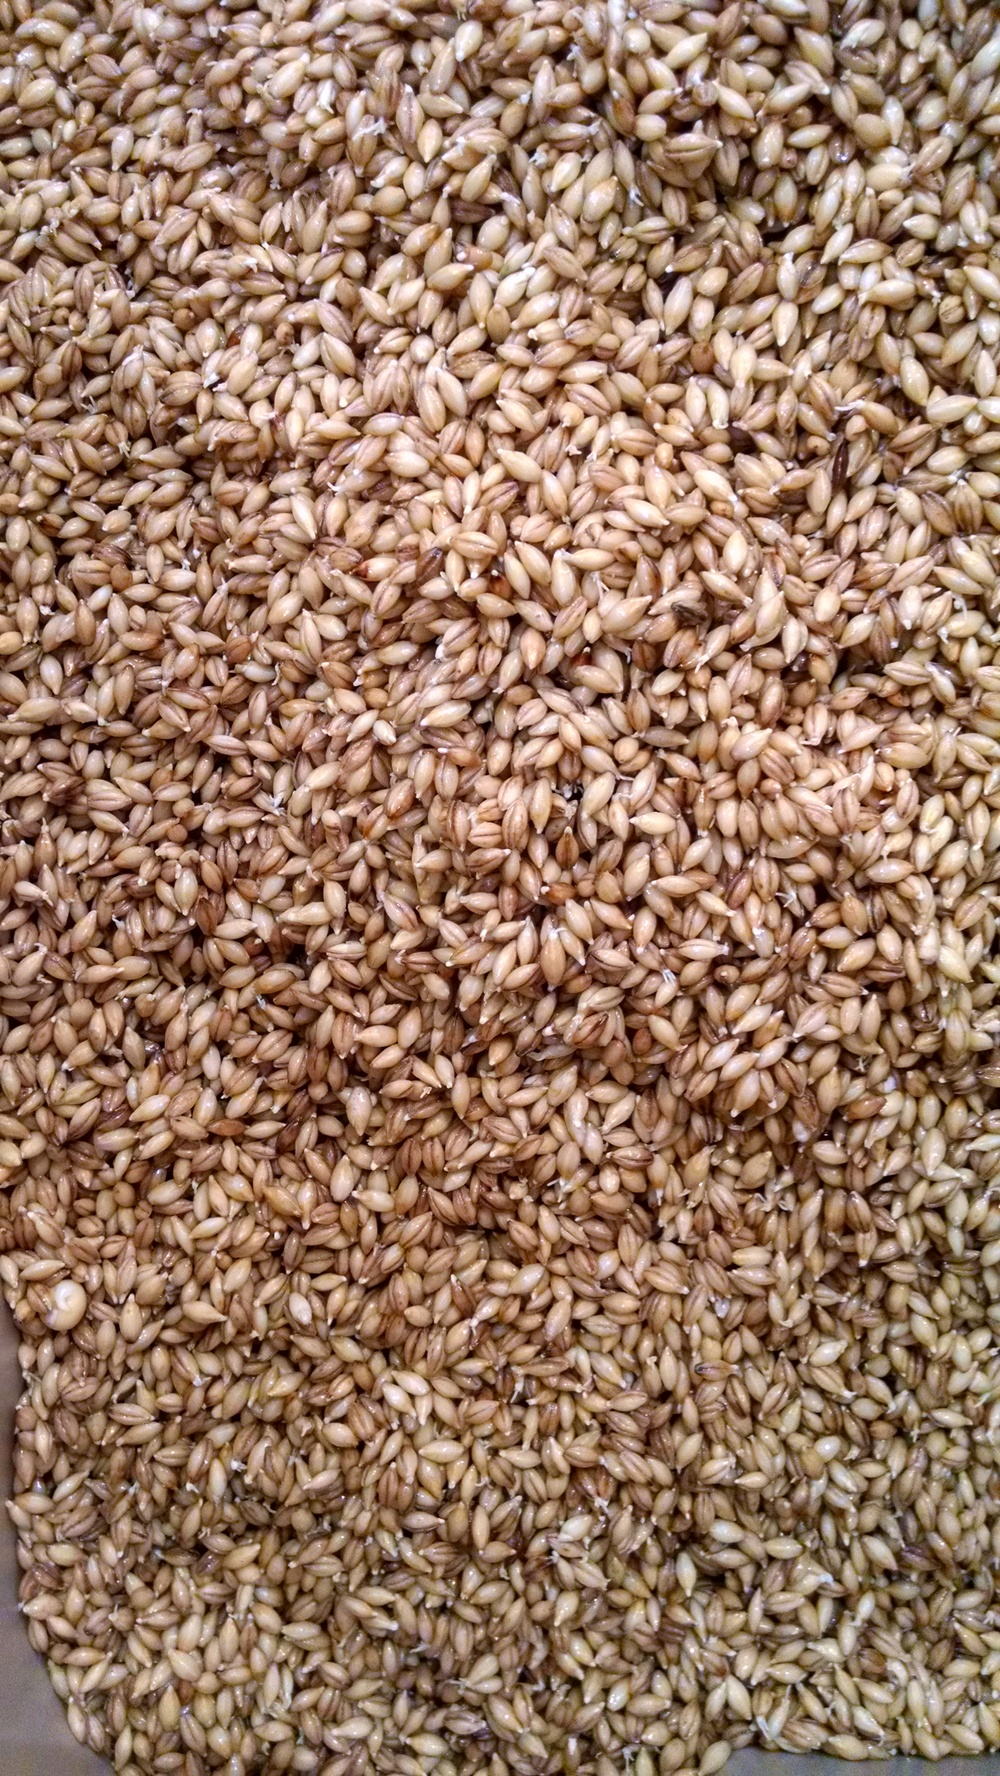 chitted grain from steep.jpg